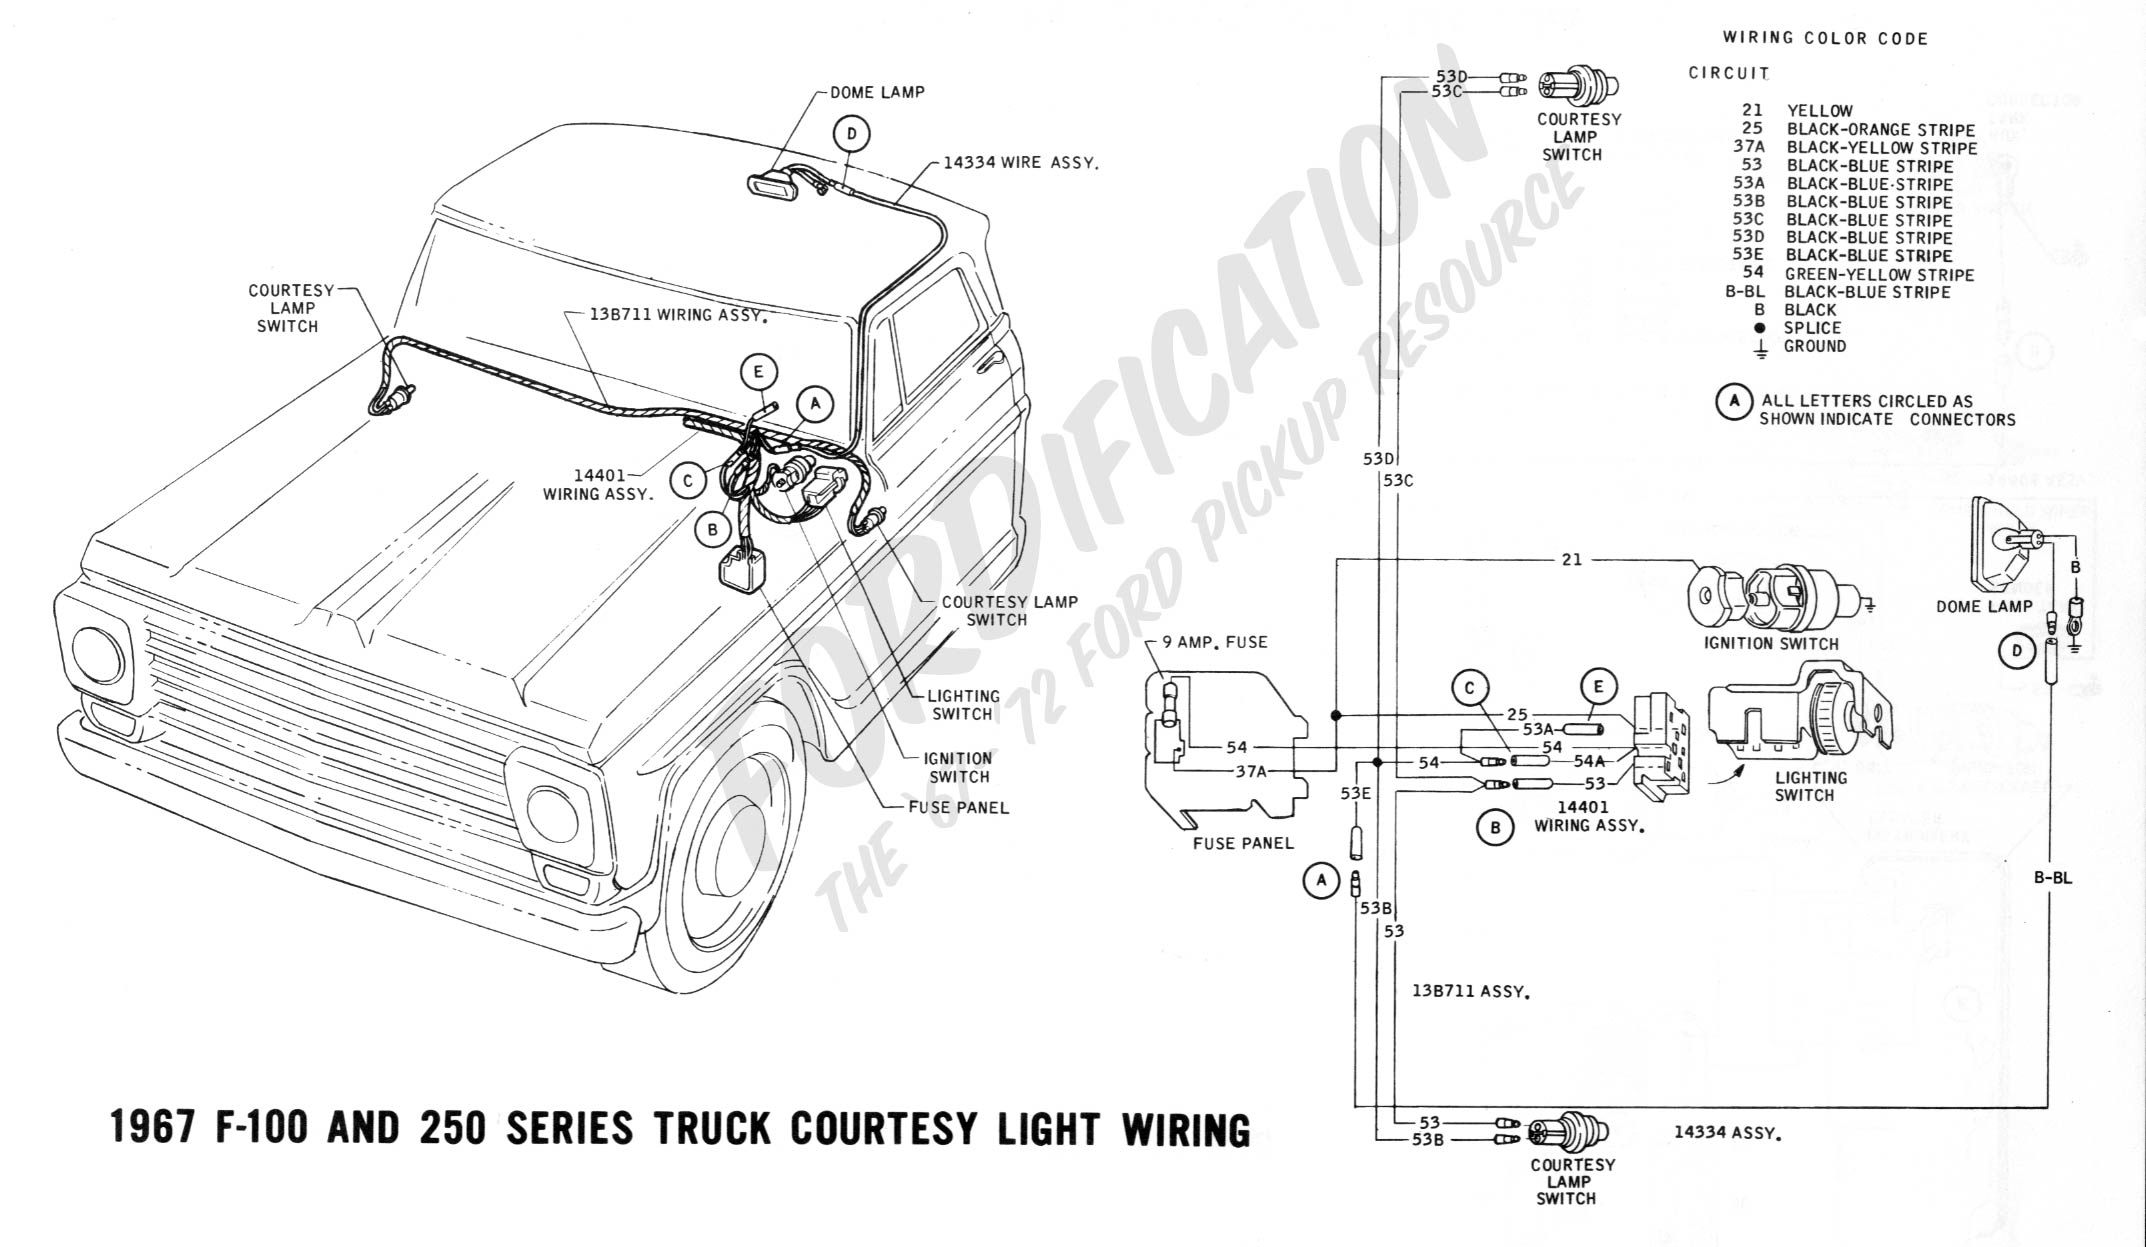 wiring 1967courtesylight ford truck technical drawings and schematics section h wiring door jamb switch wiring diagram at suagrazia.org